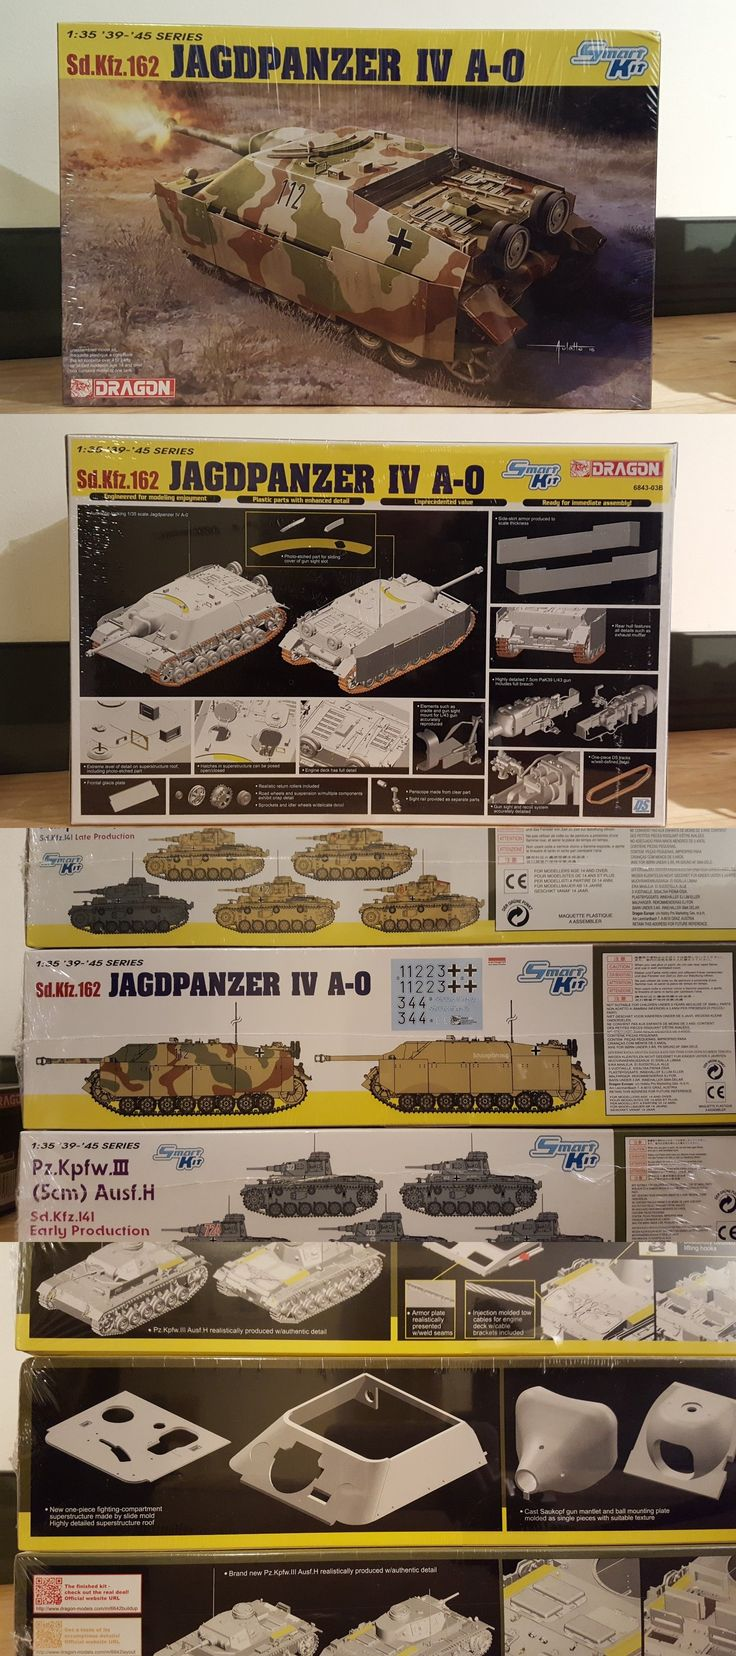 Armor 2588: Dragon 6843 1 35 Jagdpanzer Iv A-0 -> BUY IT NOW ONLY: $50 on eBay!